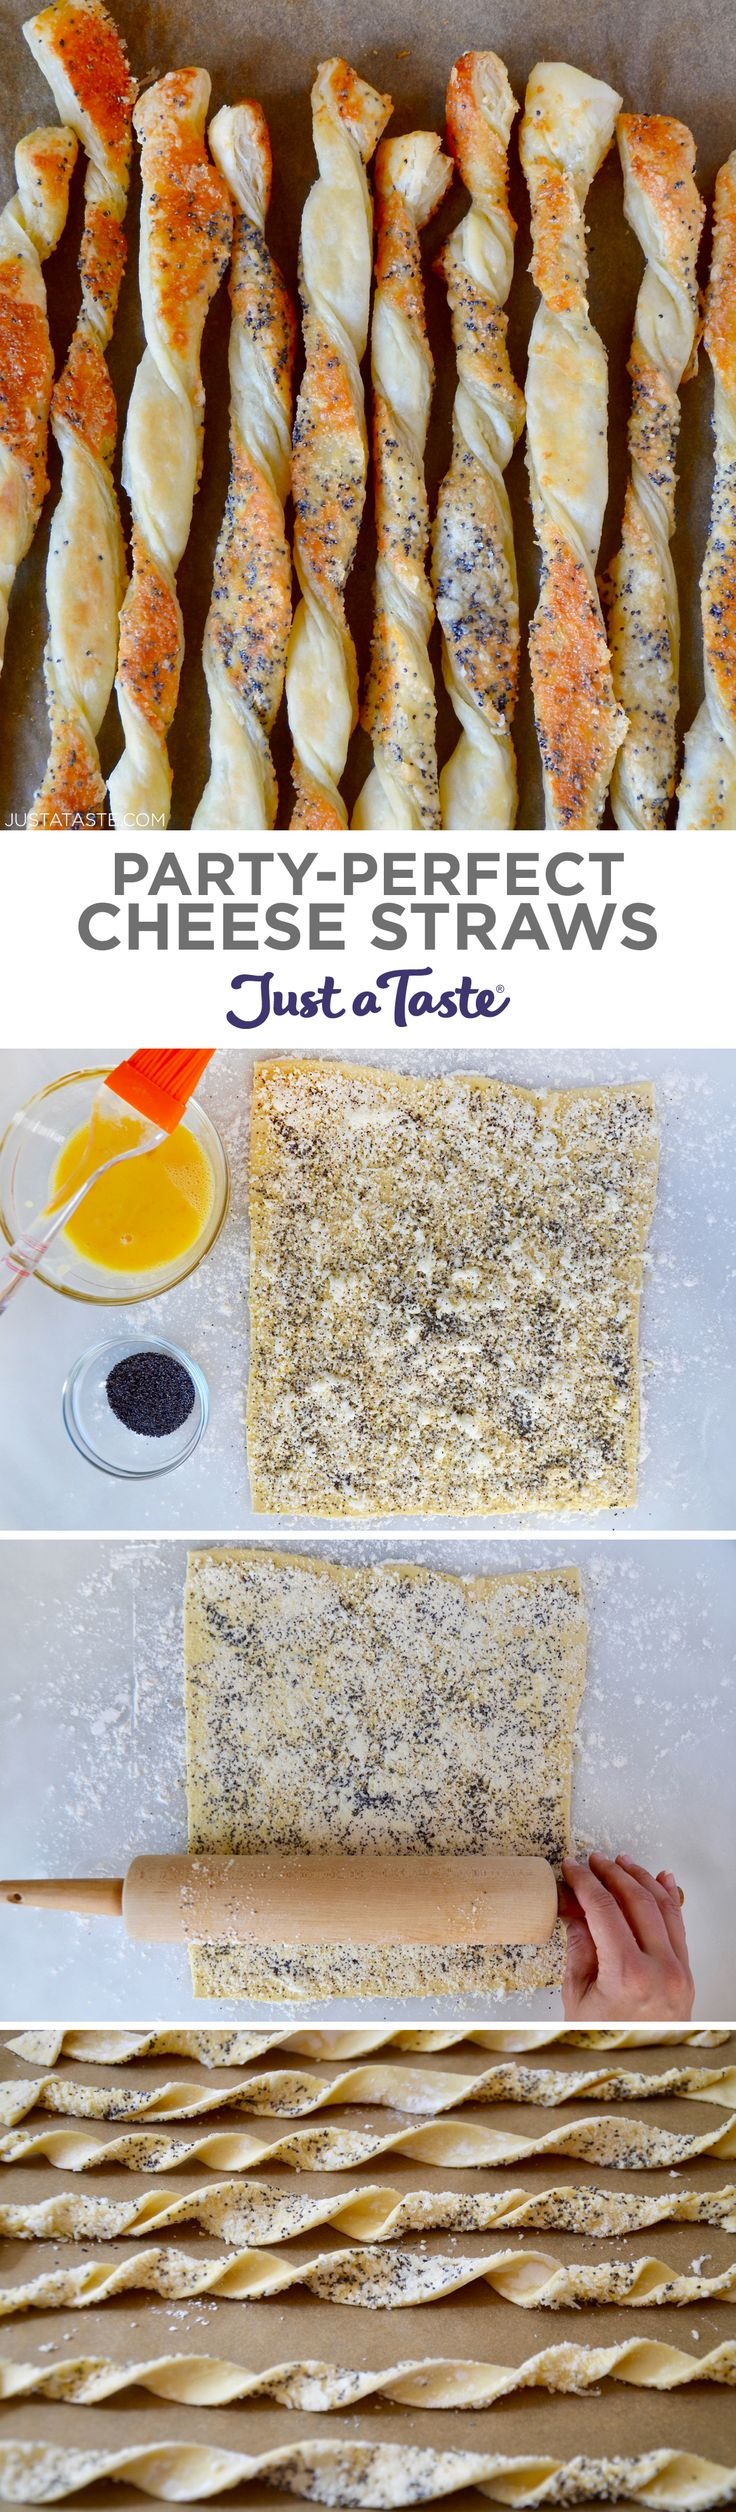 Party-Perfect Cheese Straws Up your appetizer or snack game with this quick and easy recipe for Party-Perfect Cheese Straws studded with poppy seeds.